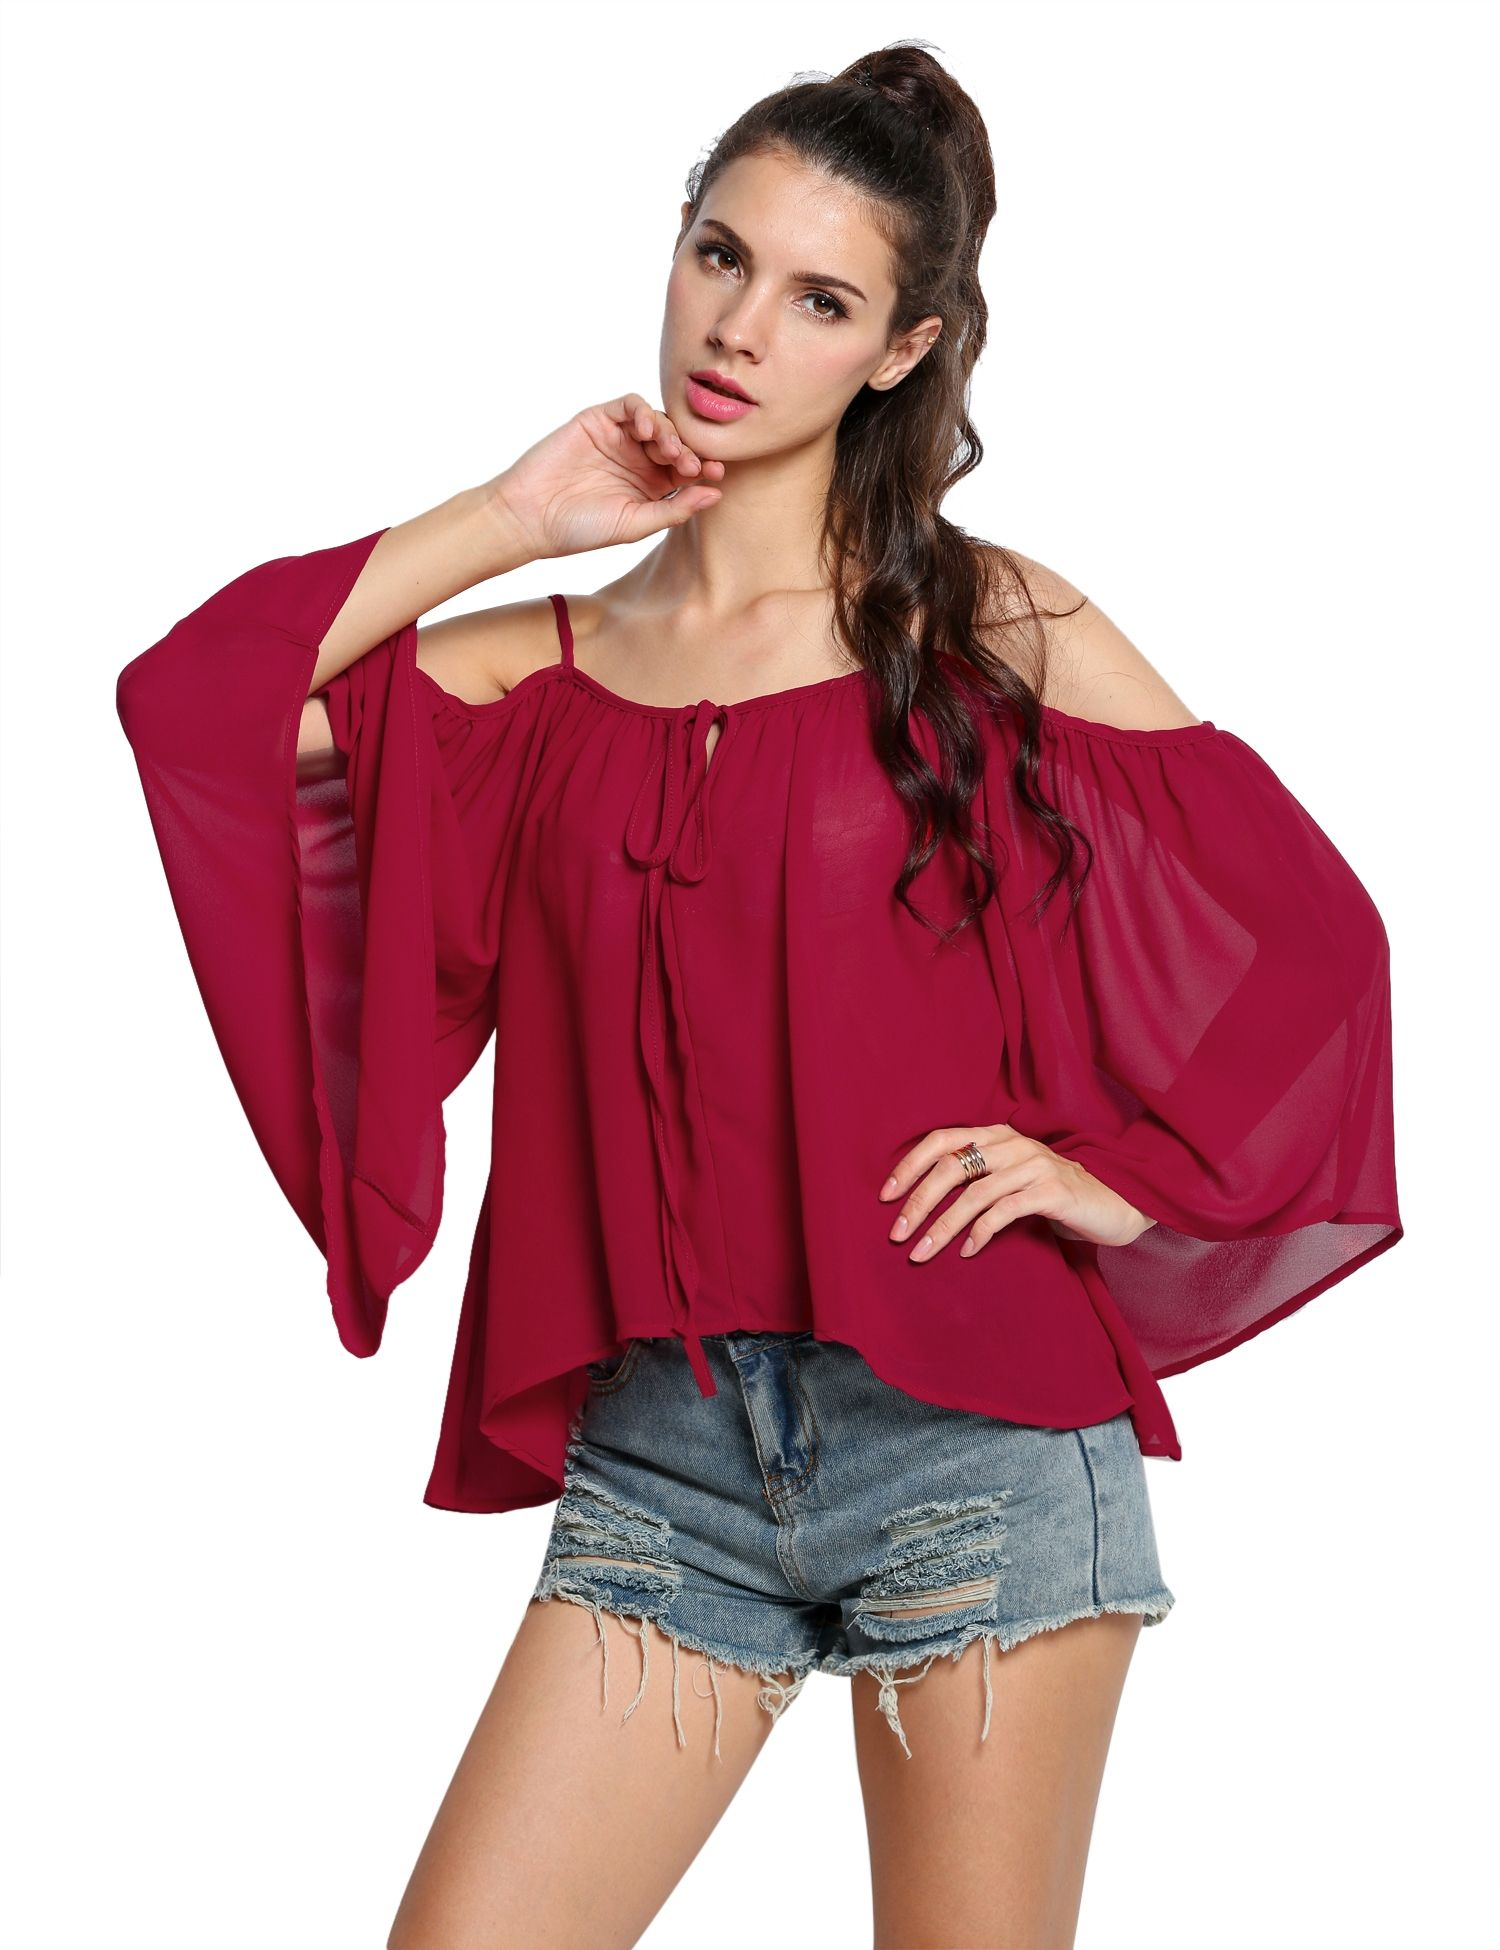 Wine red Women Spaghetti Strap Flare Sleeve Off Shoulder Loose Shirts & Blouses Casual Tops dresslink.com